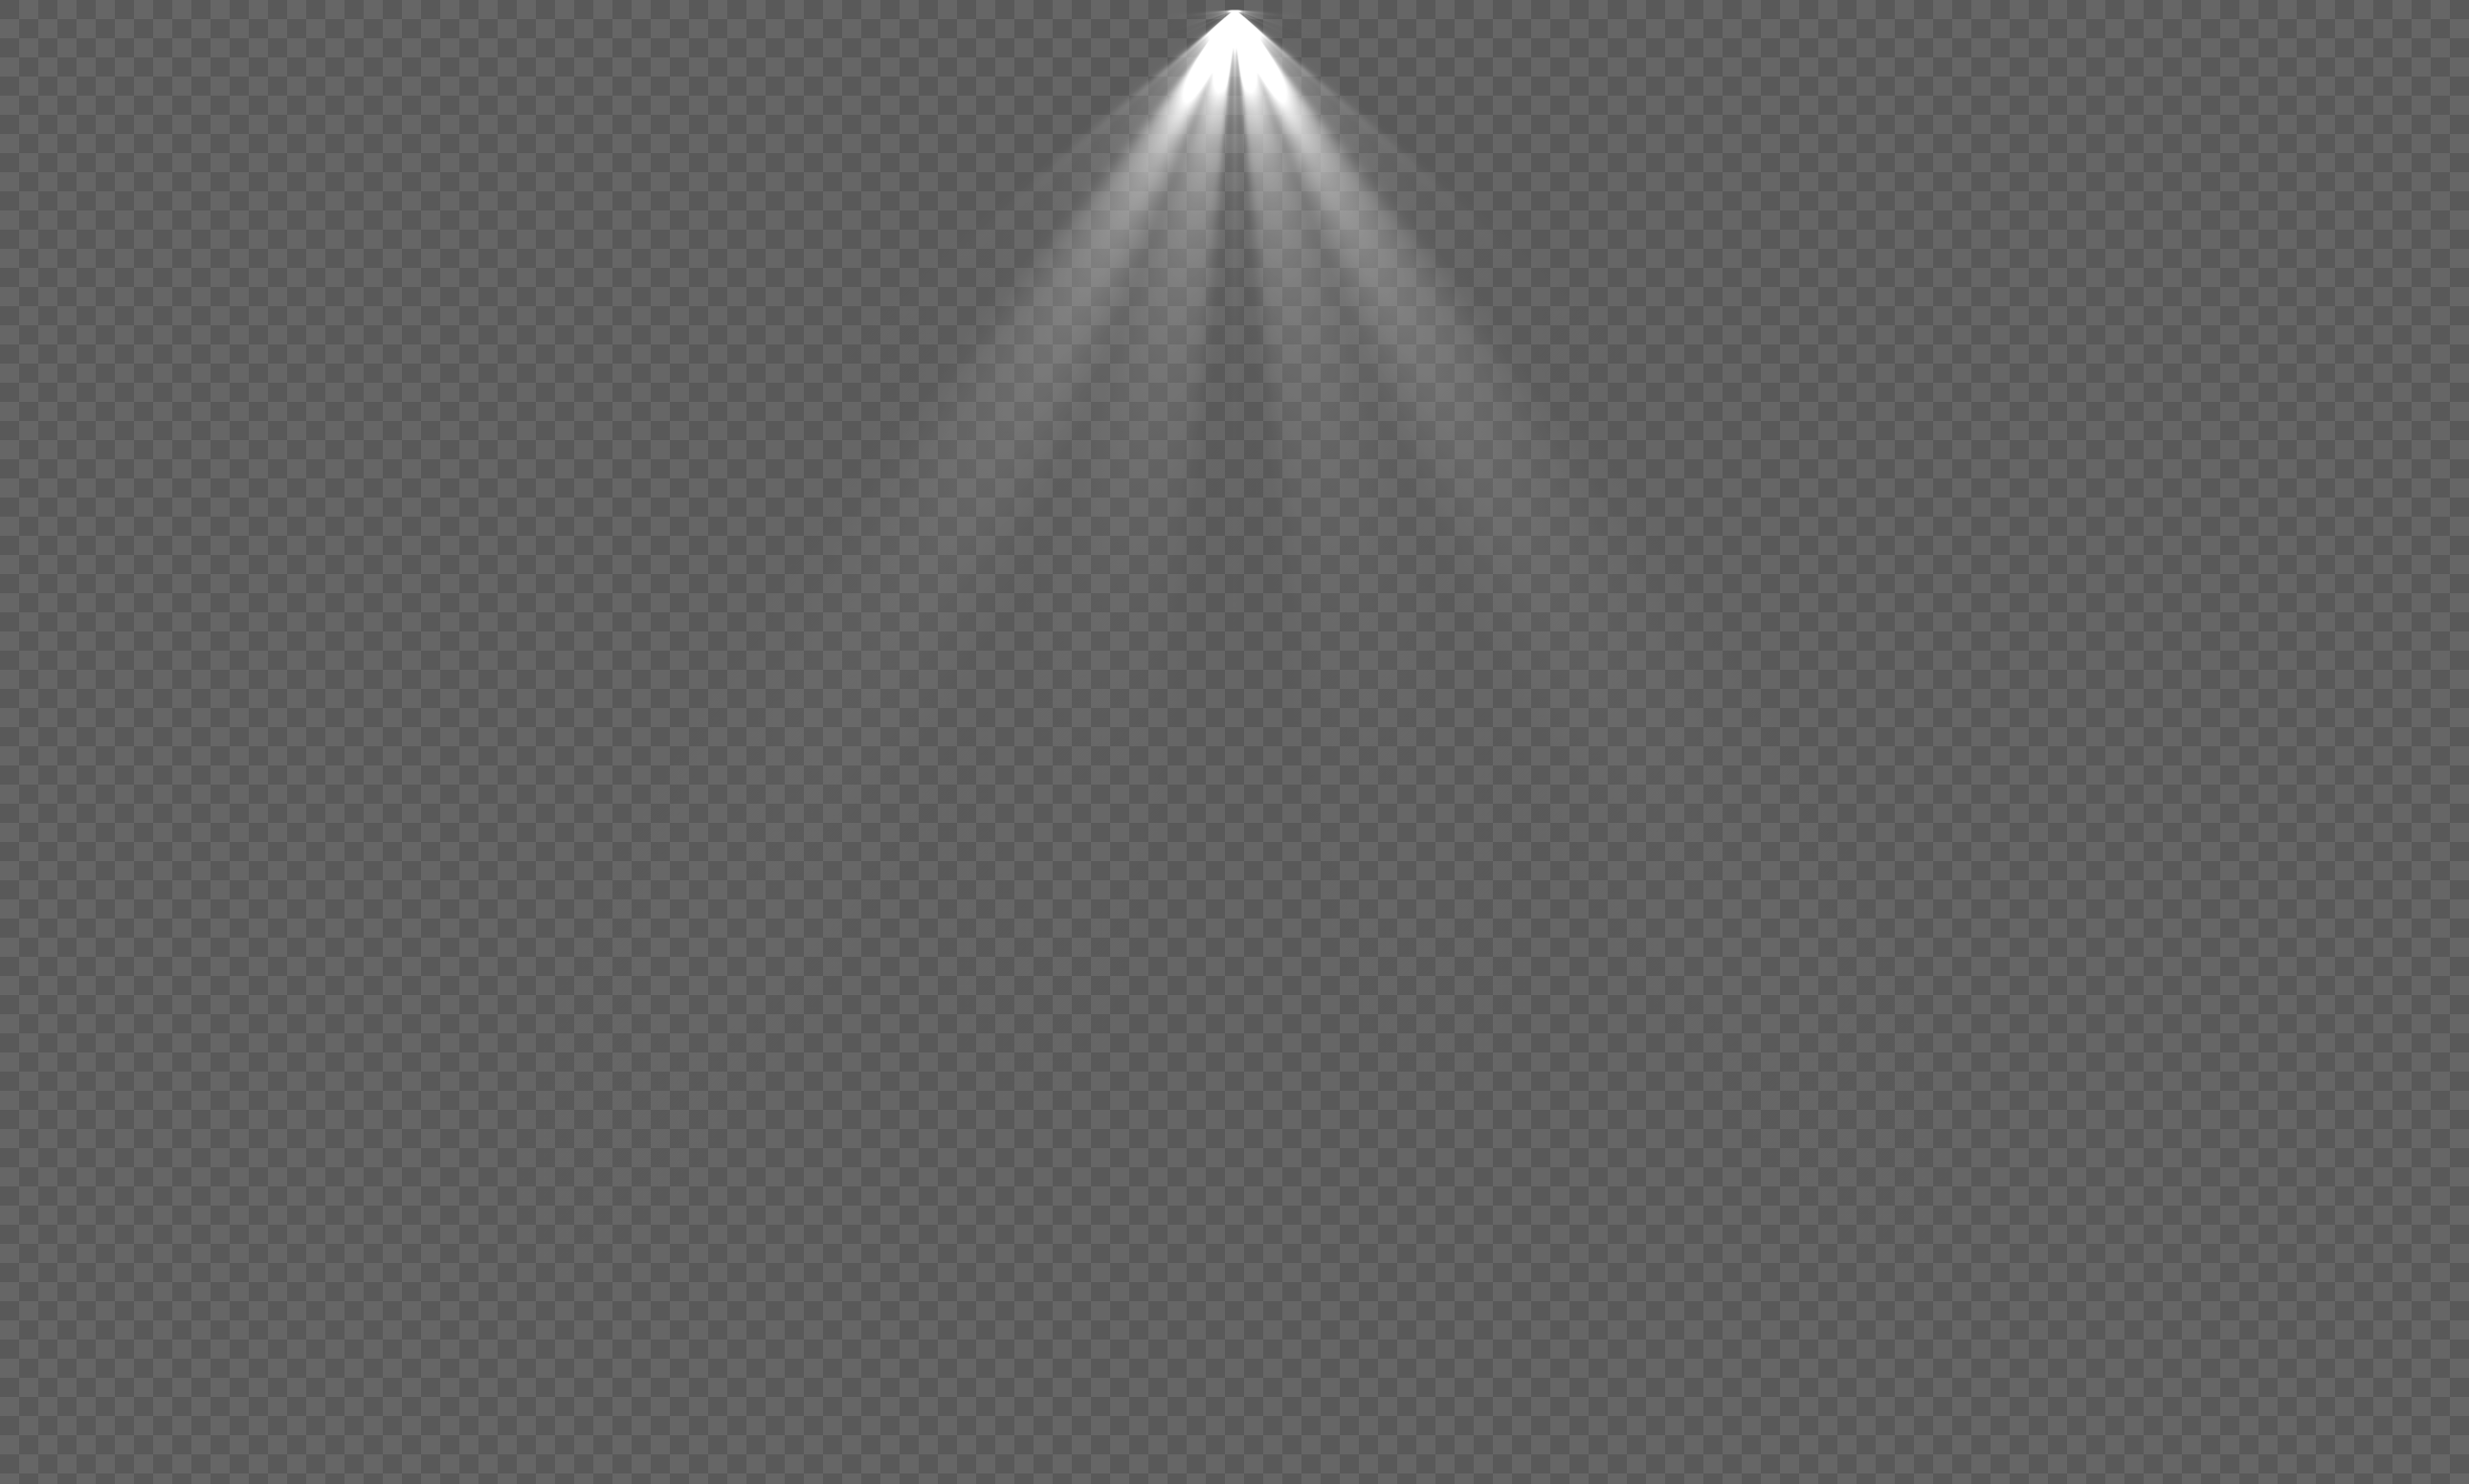 Light Beam Png & Free Light Beam.png Transparent Images #28566.